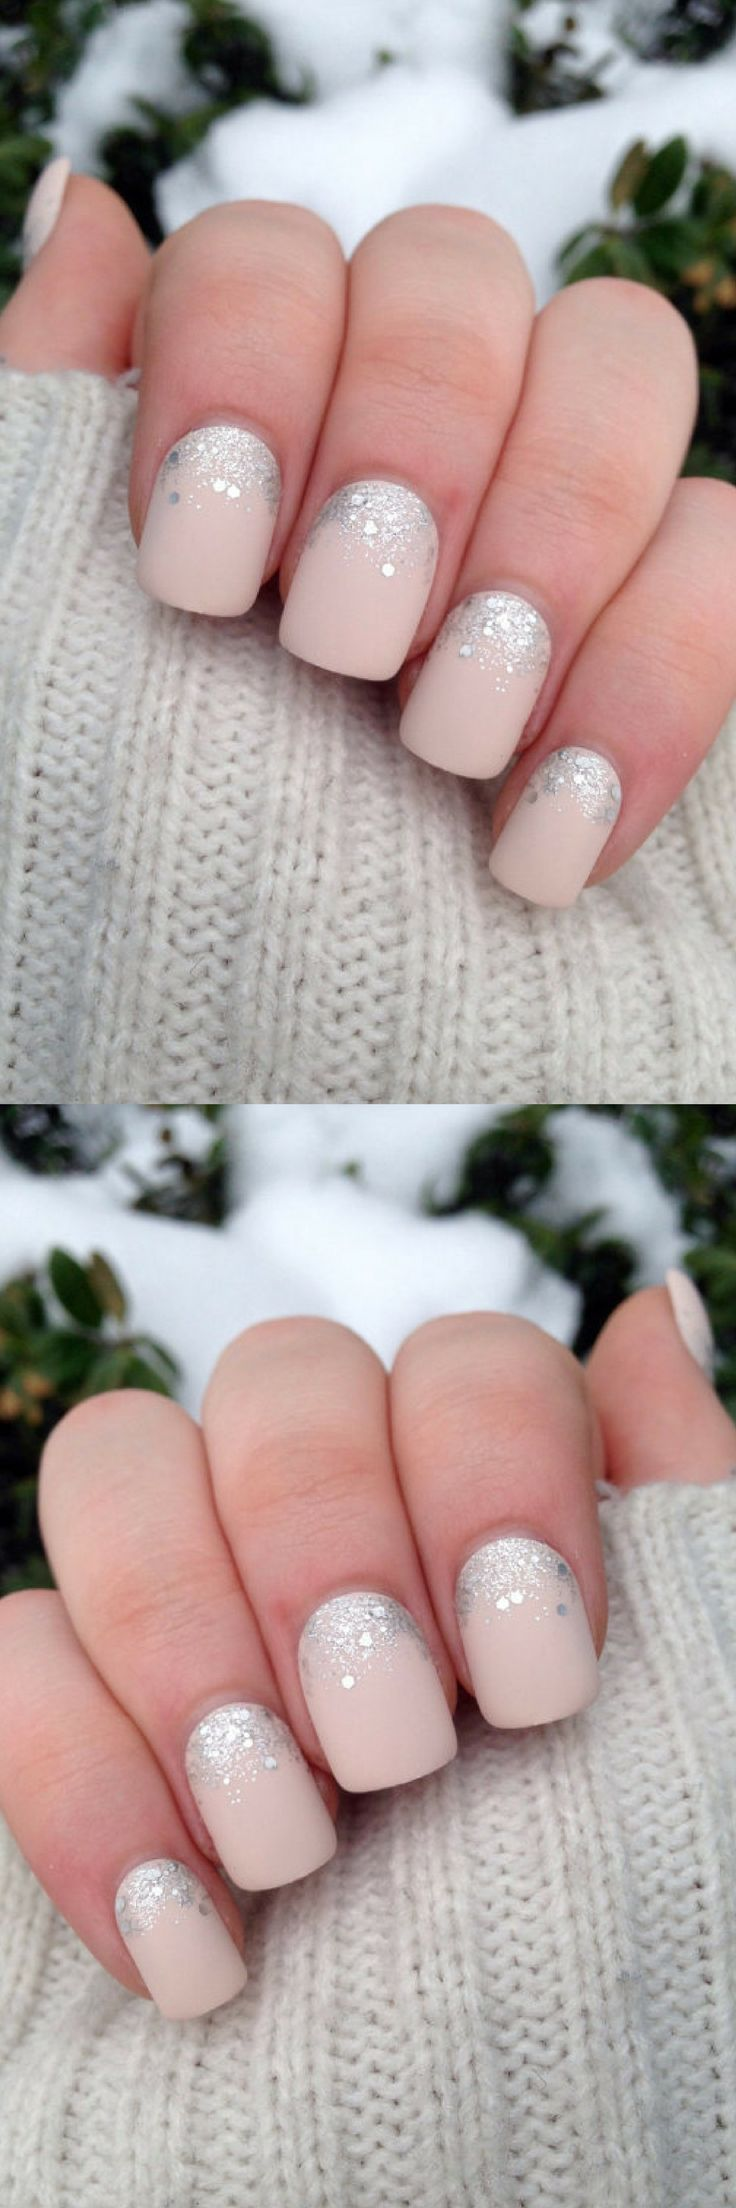 I love the look of these!!!! Beautiful pink nails with silver glitter!!! #glitternails #winternails #newyearnails #ad #nailart #naildesigns